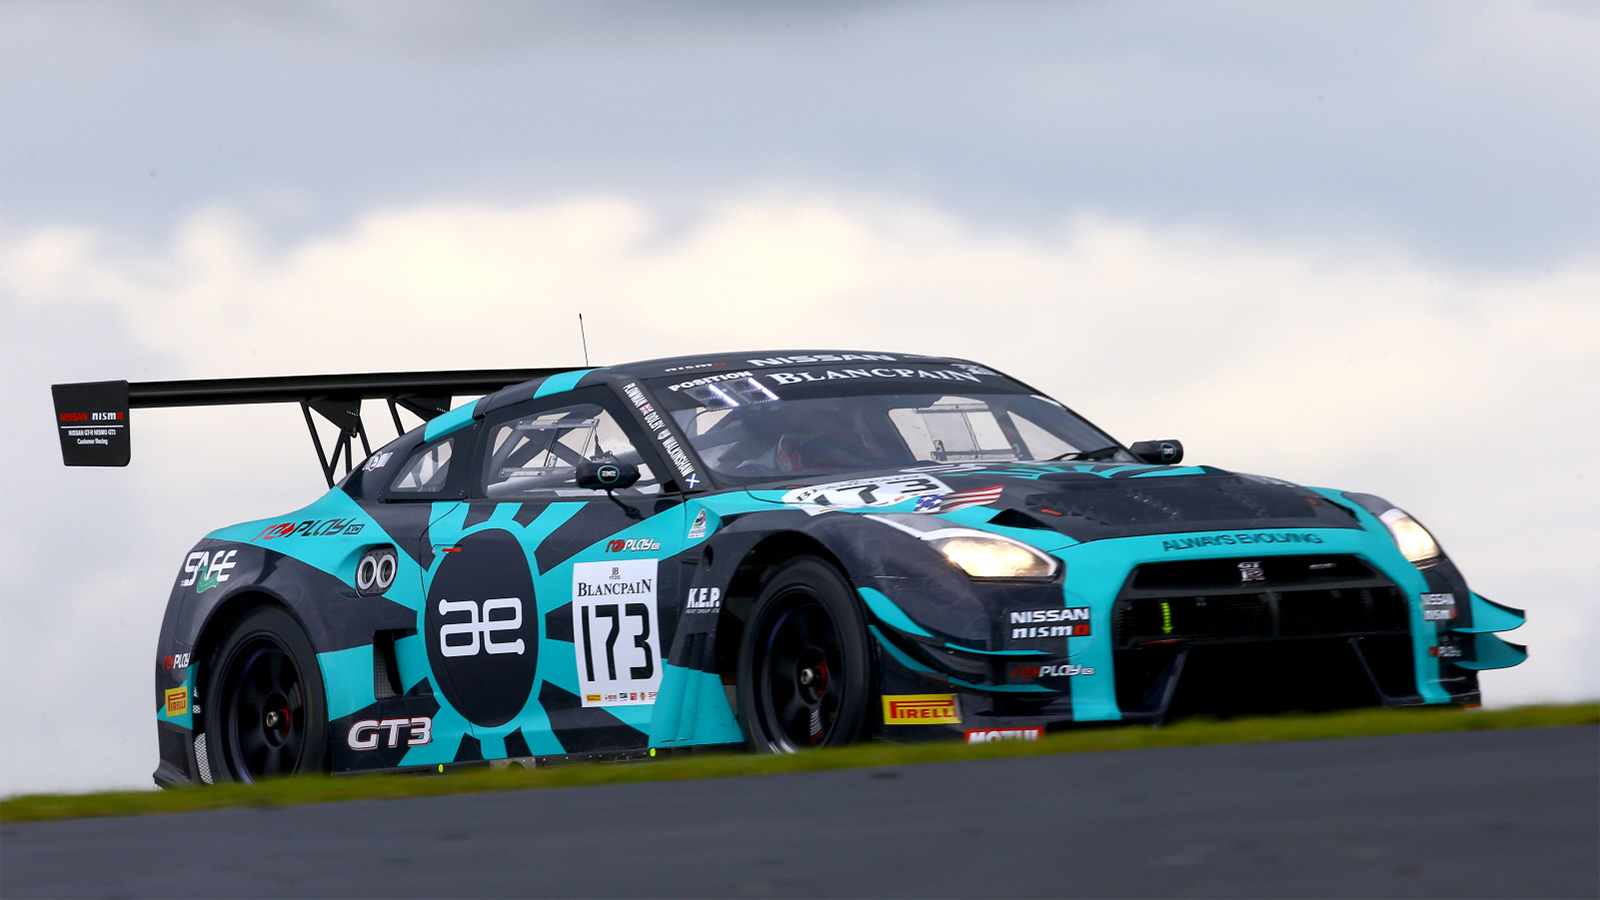 Strong Top Eight Finish for Walkinshaw and Always Evolving Motorsport in Endurance Series Finale